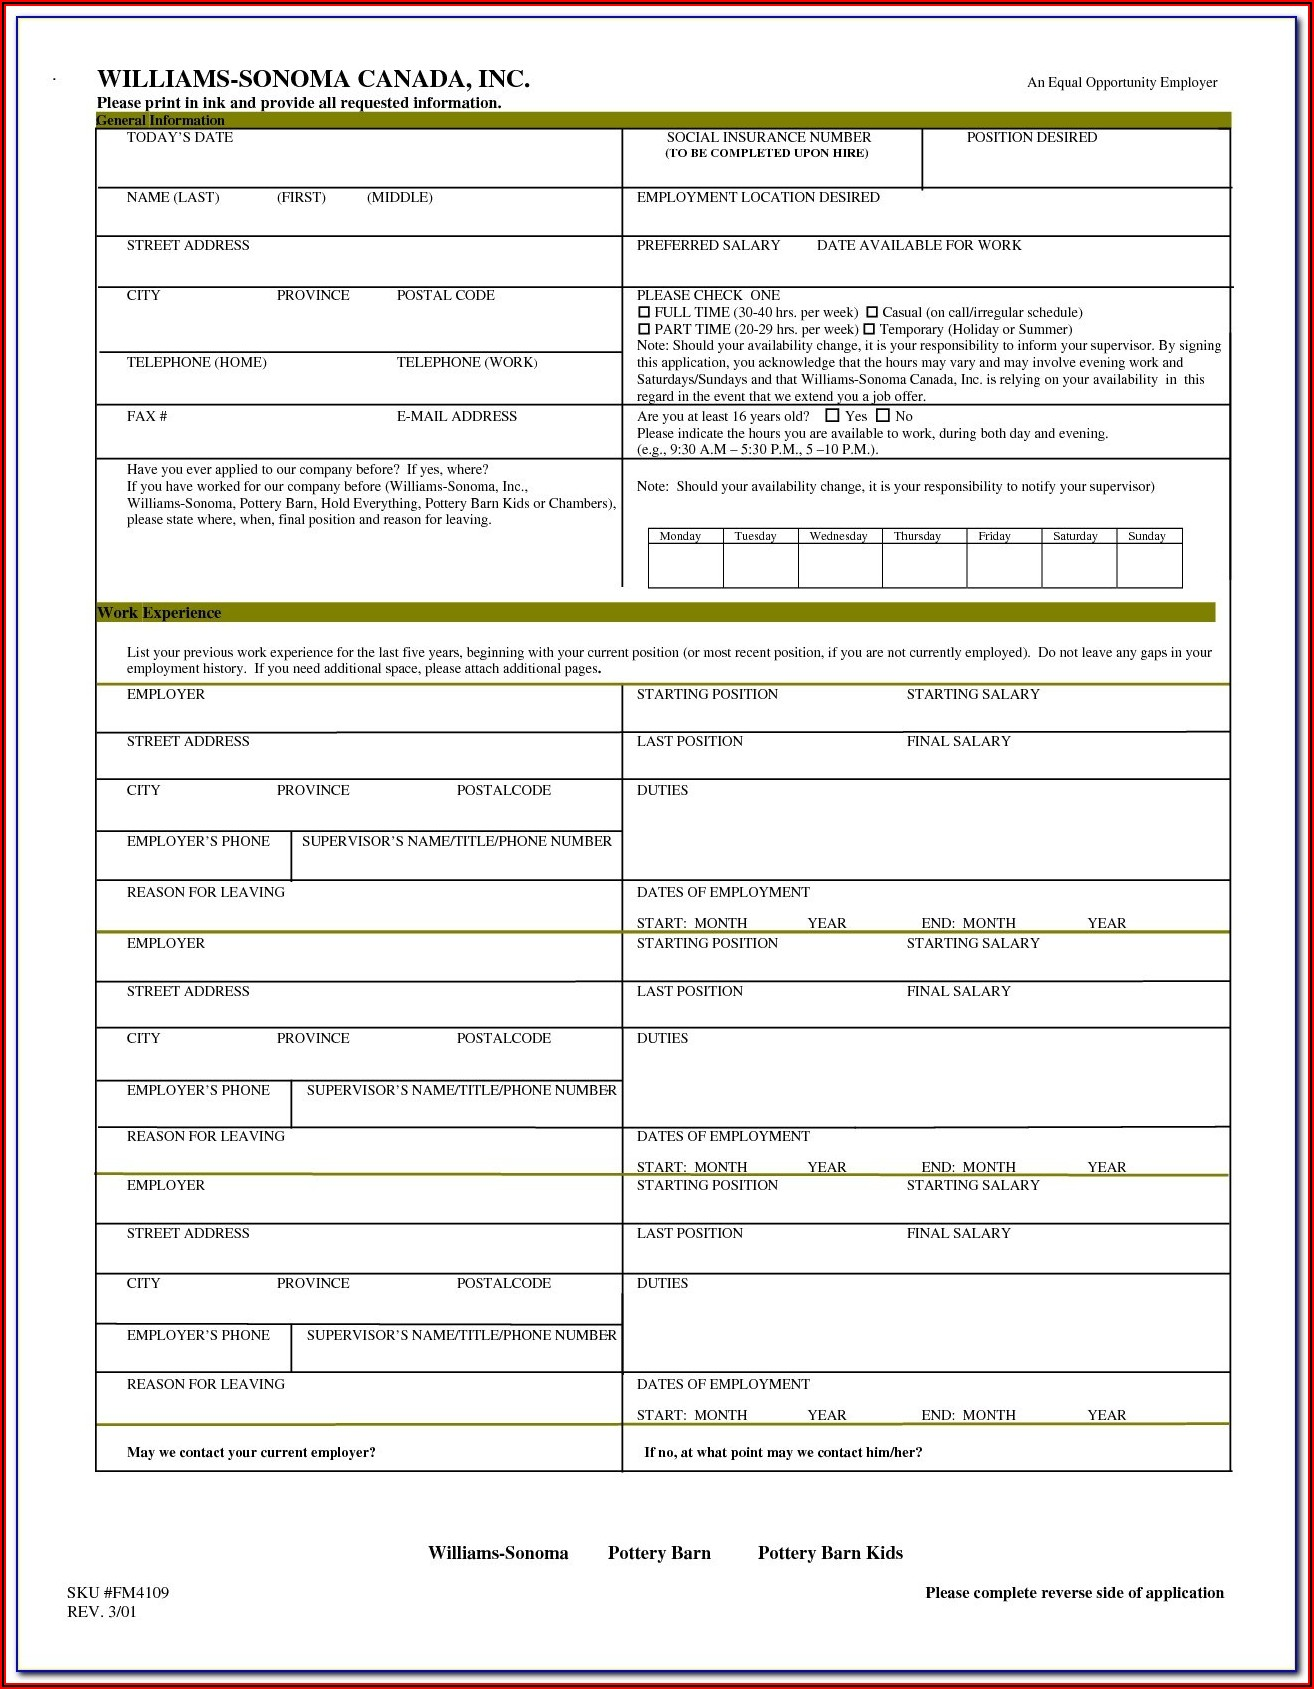 Fema Lomr Application Forms